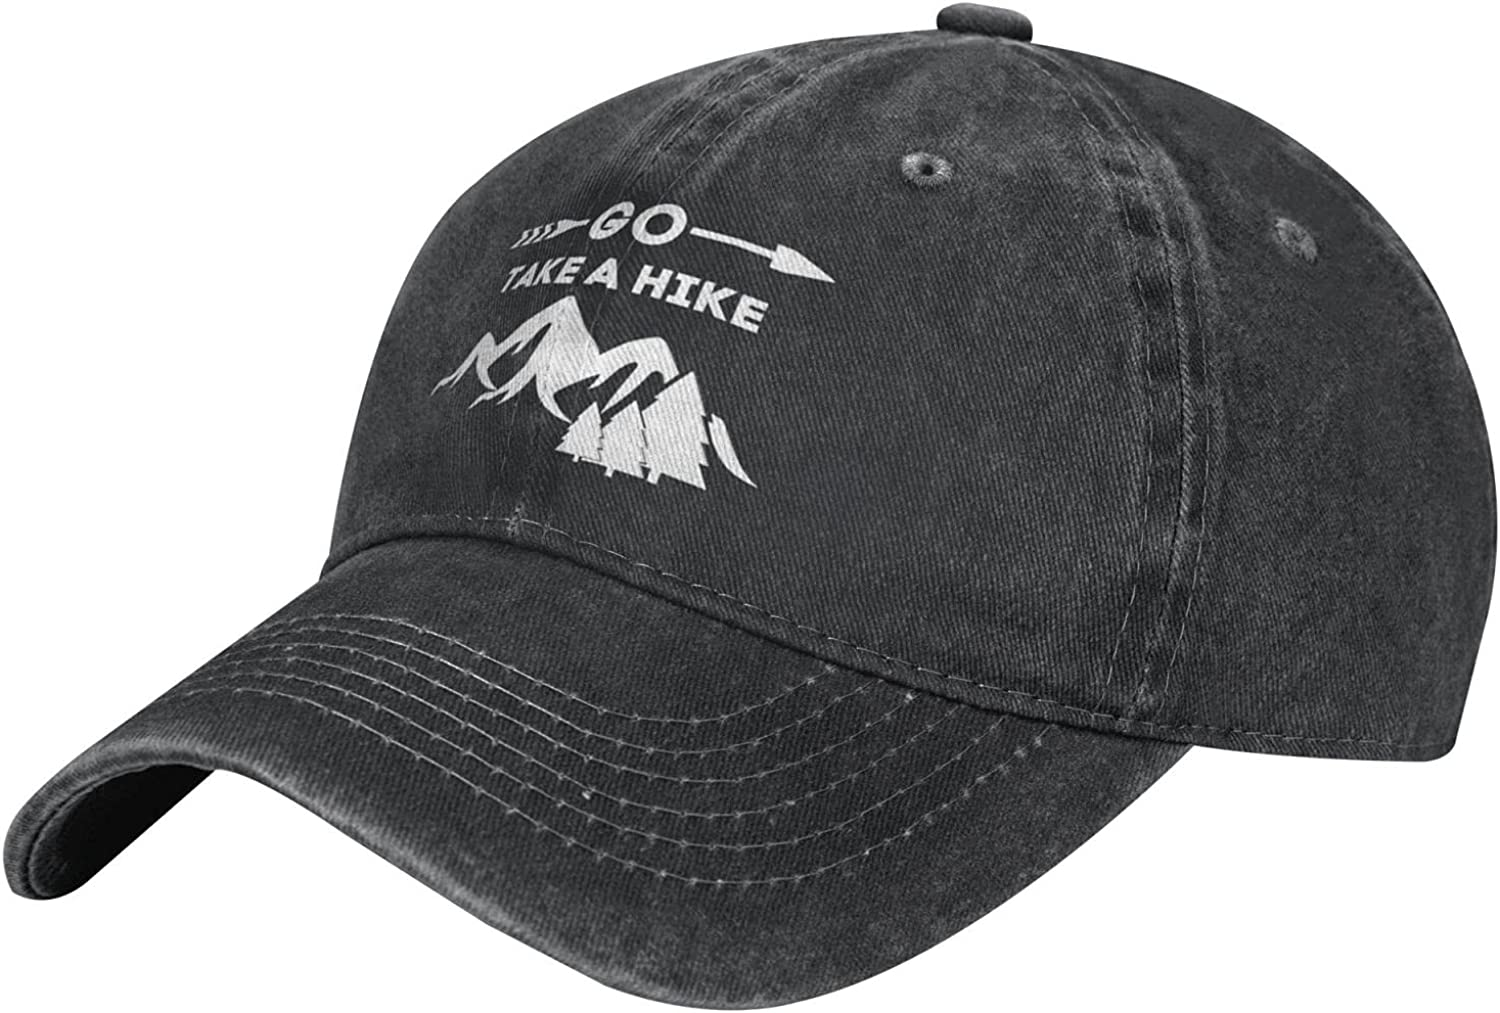 Wisedeal Women's Go Take A Hike Hats Washed Distressed Vintage Baseball Cap